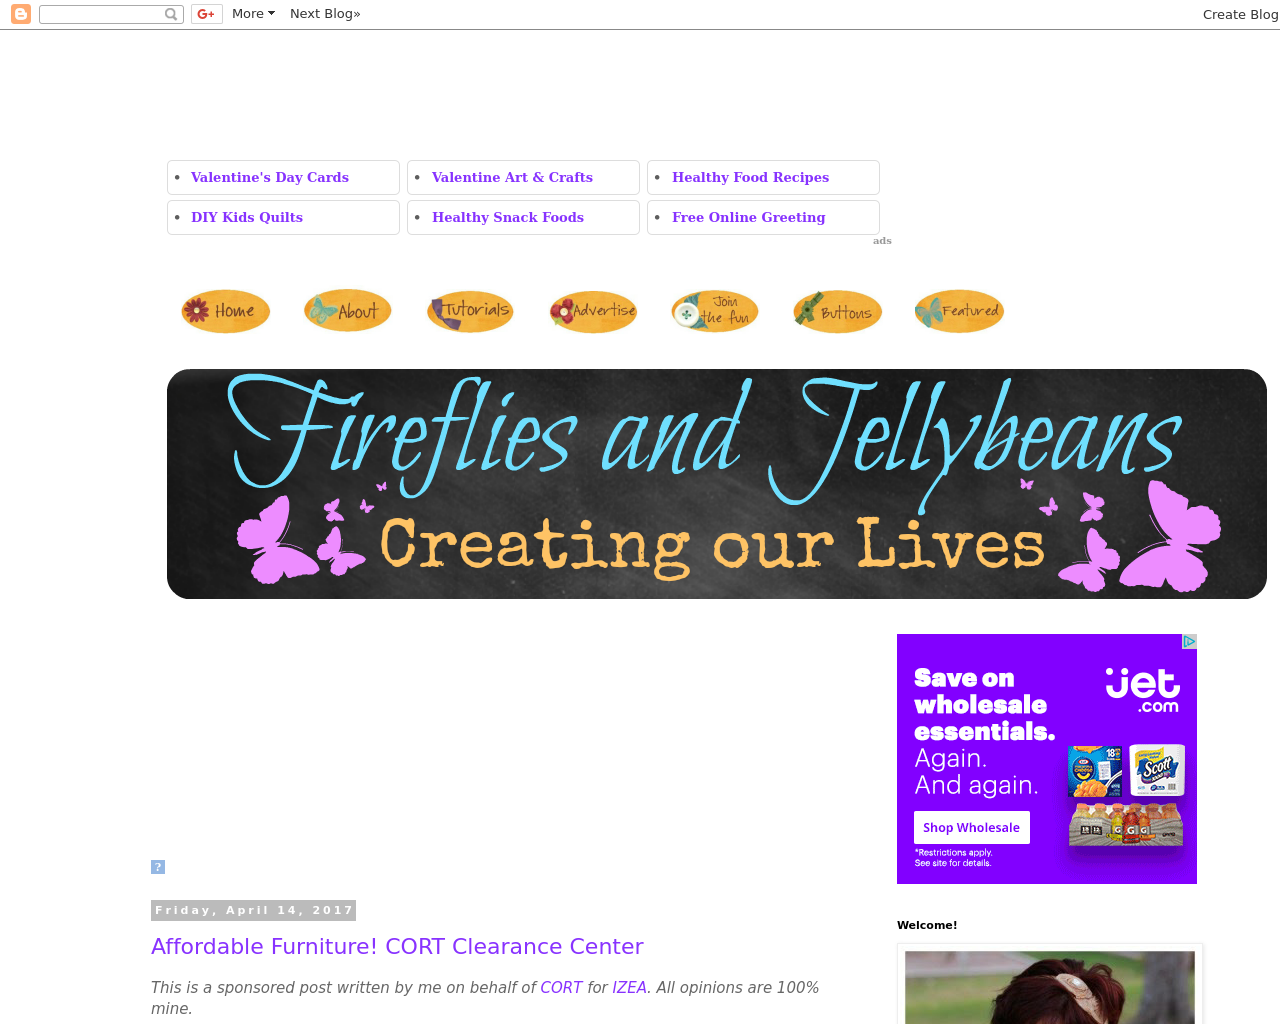 Fireflies-And-Jellybeans-Advertising-Reviews-Pricing